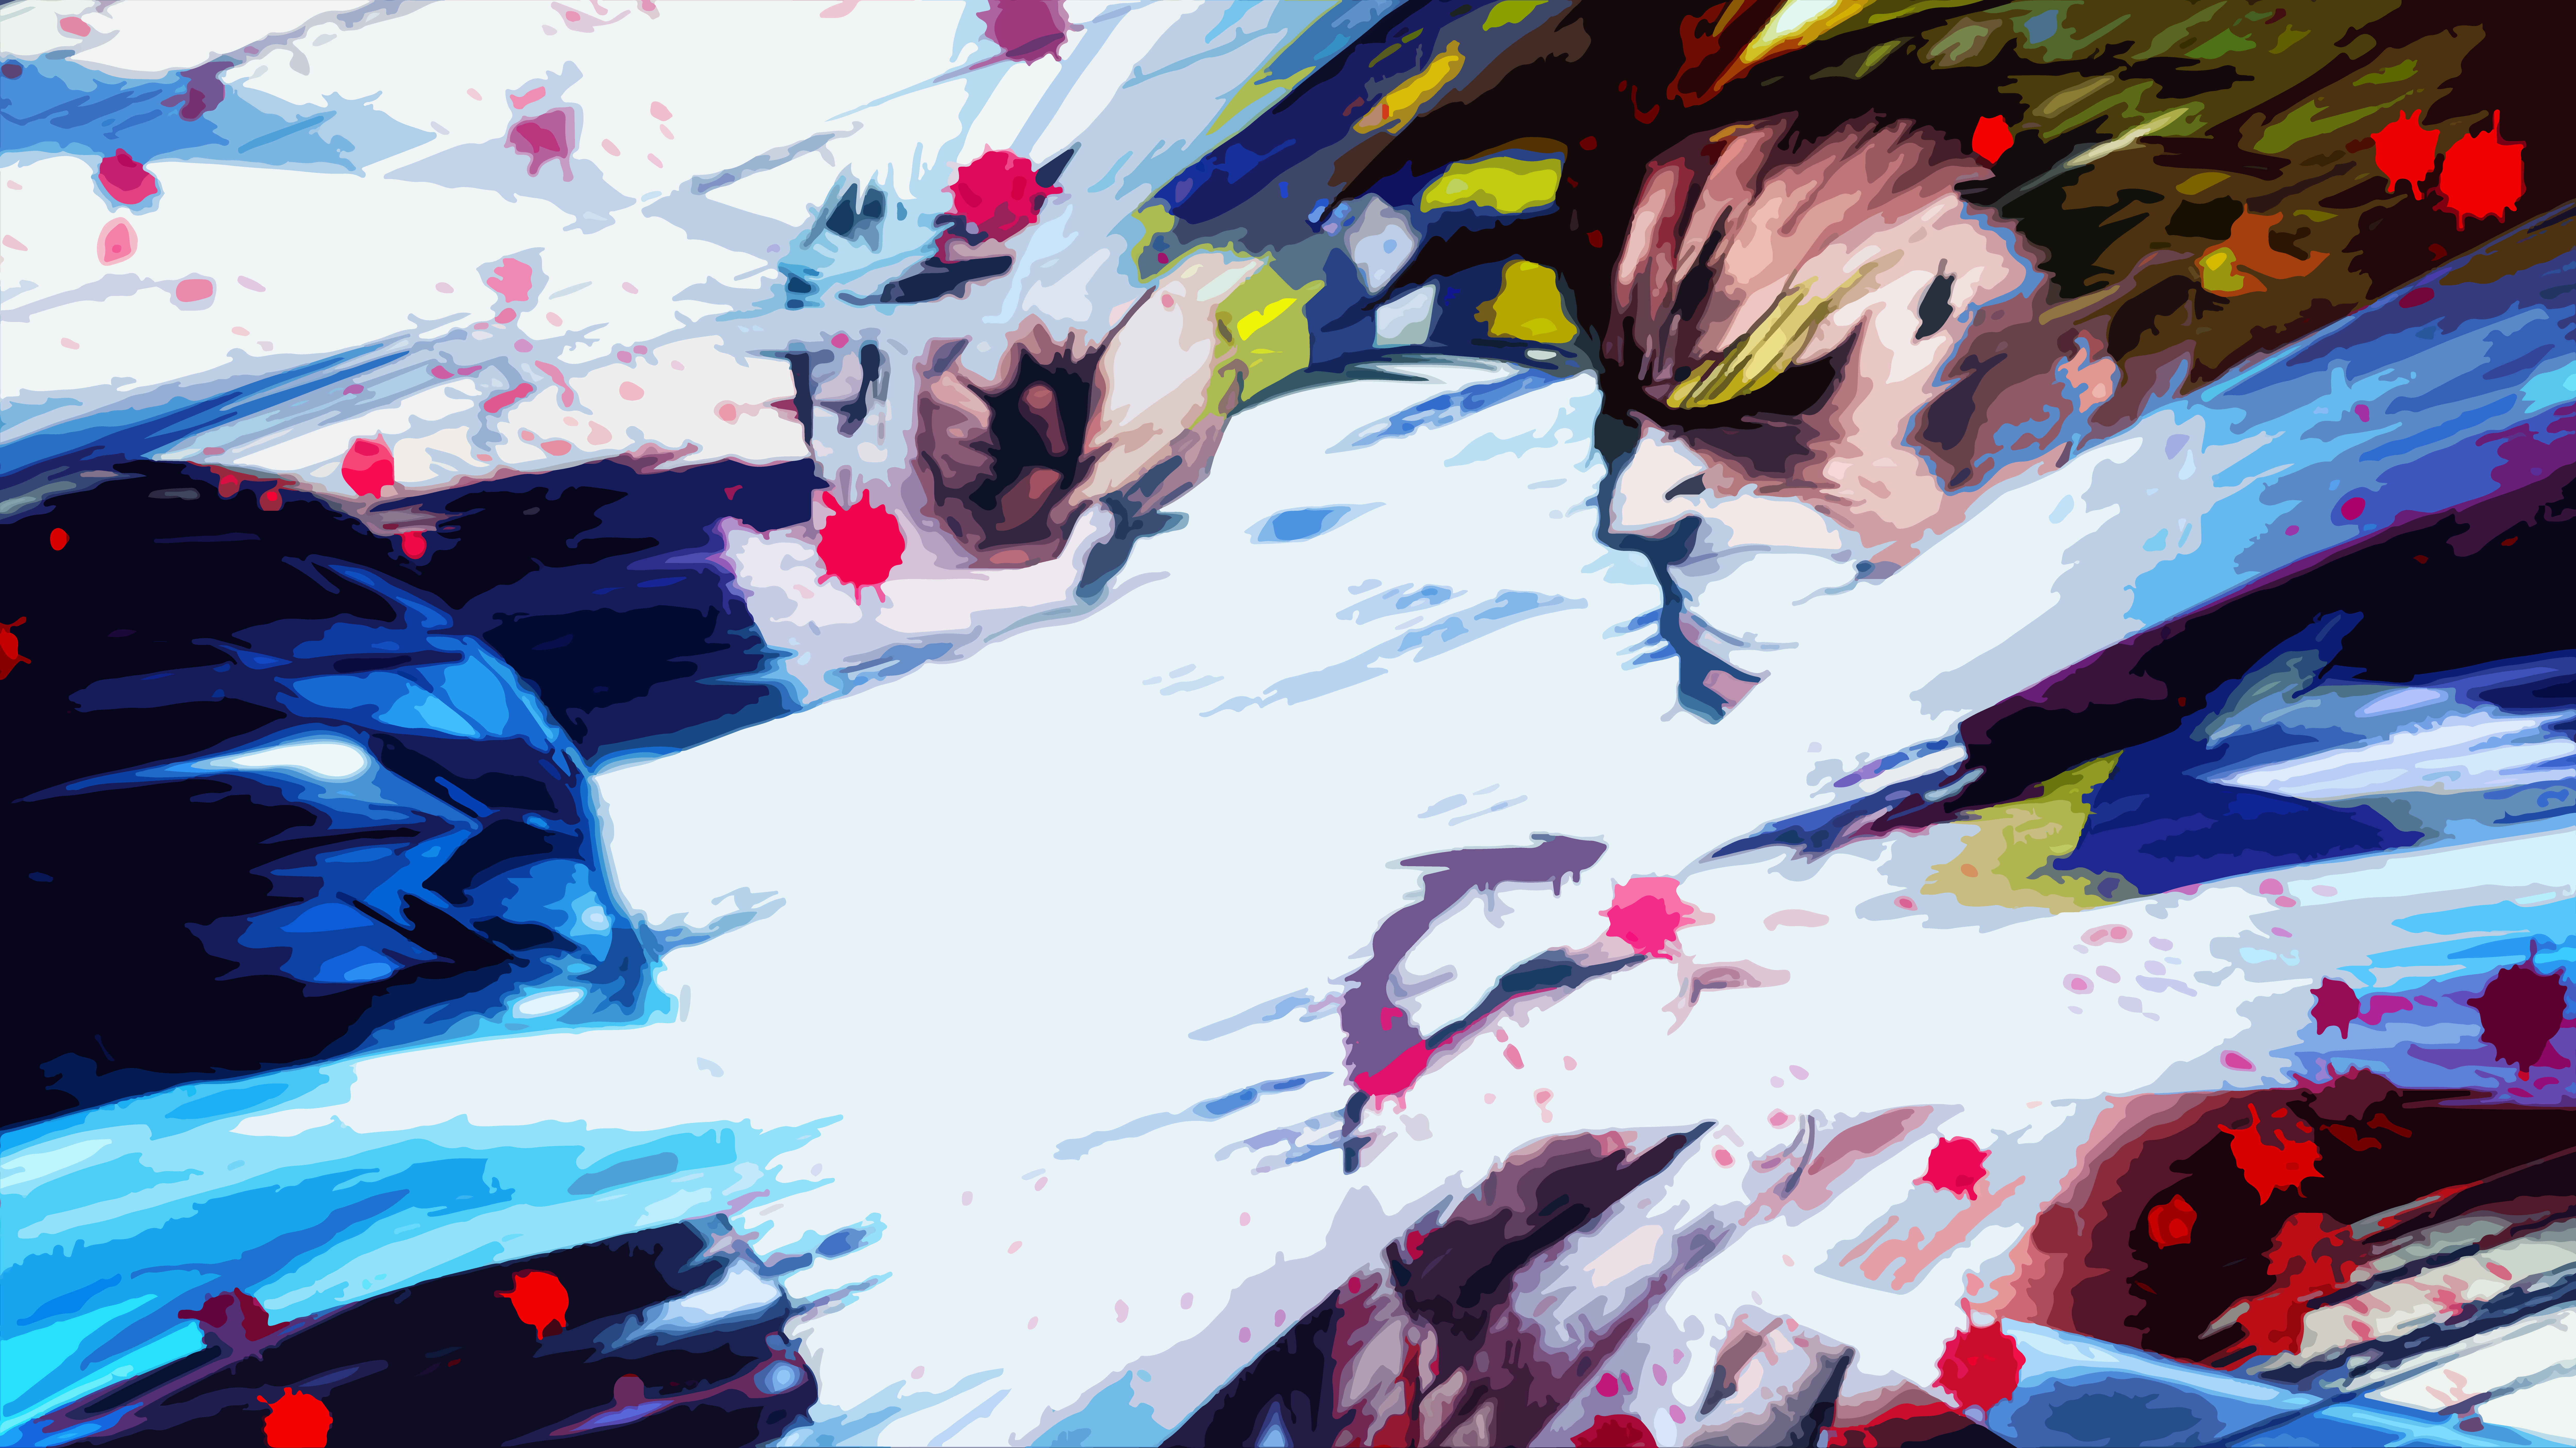 10000x5622 All Might Vs All For One Vector Remastered Wallpaper Wallpaper Background Image View Download Com My Hero Academia Episodes Anime Fight My Hero